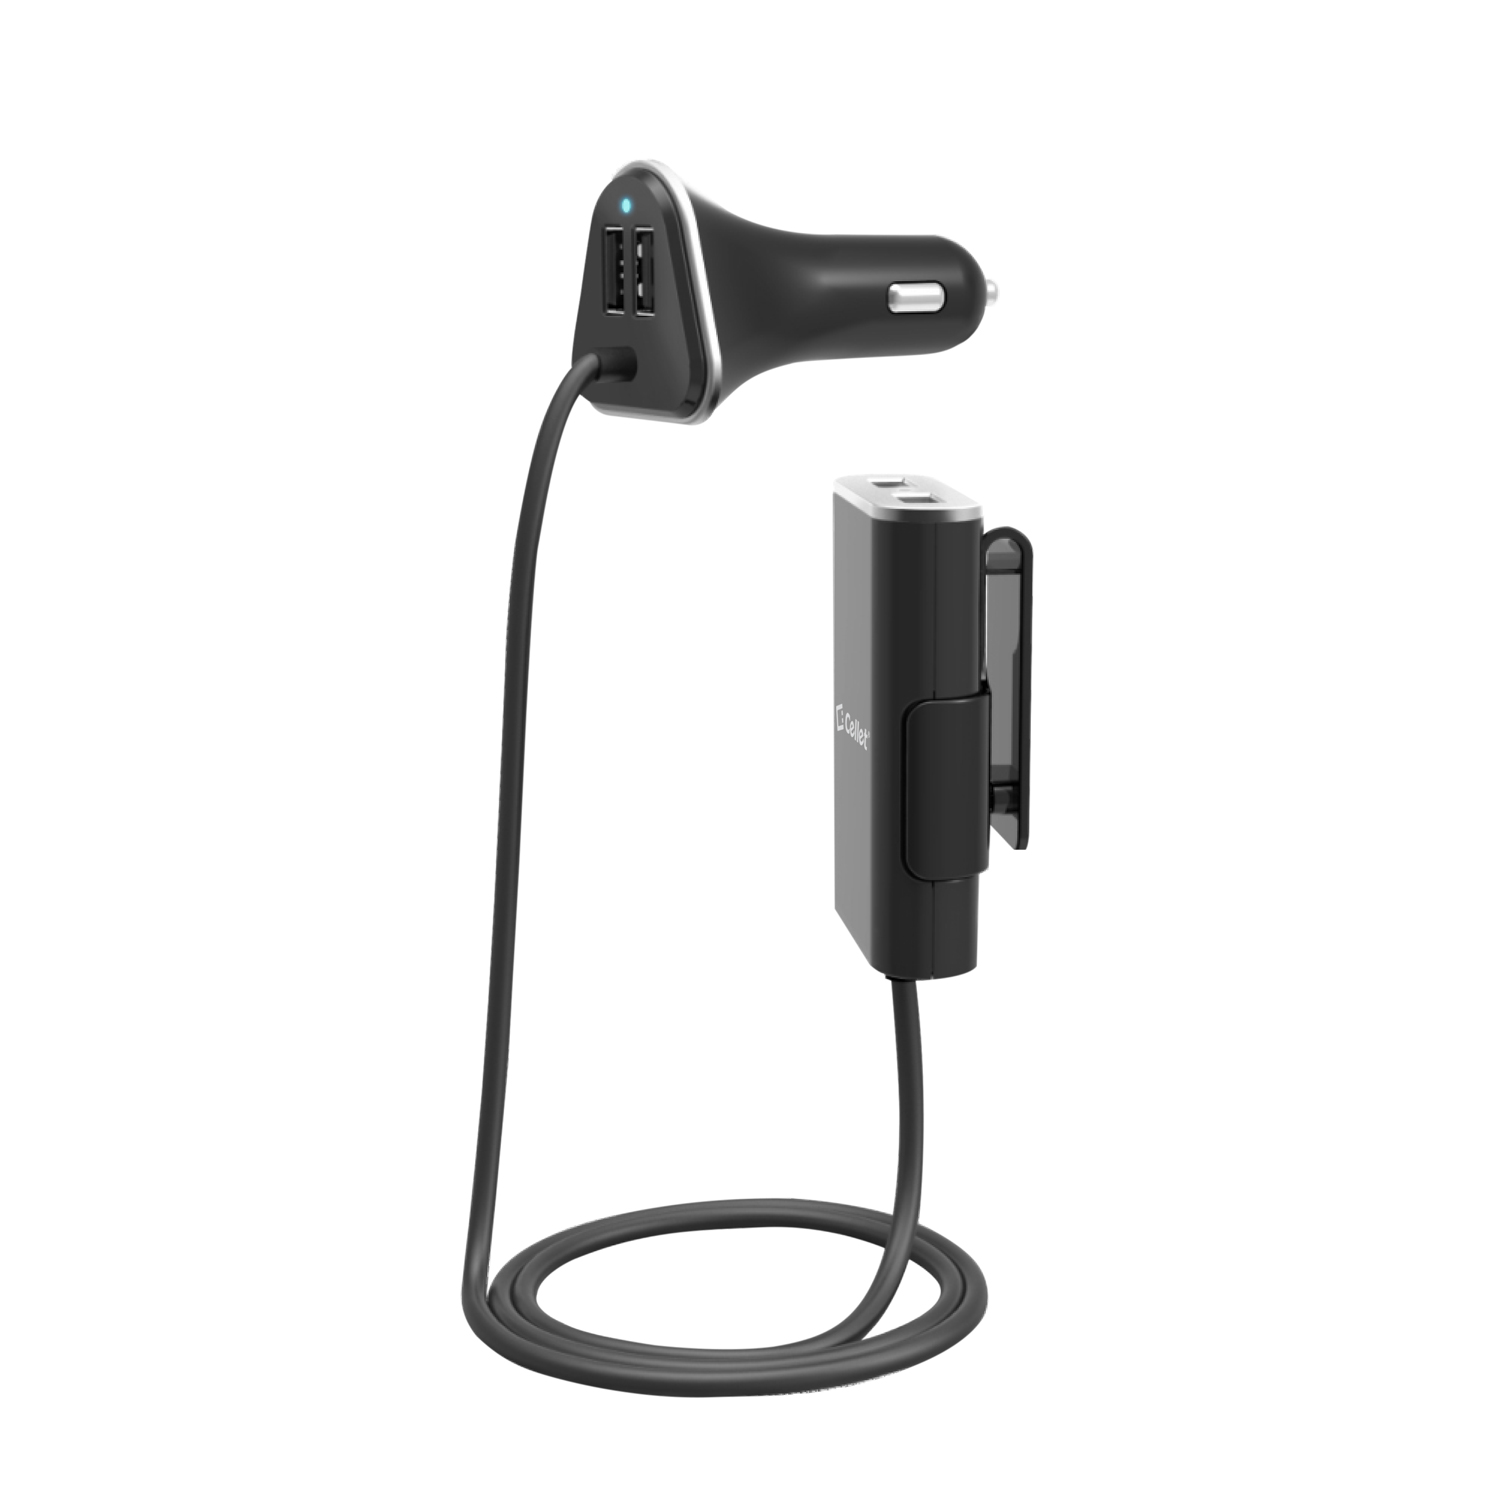 Sony Xperia Z 4 Port USB Car Charger Front Back Seat Black